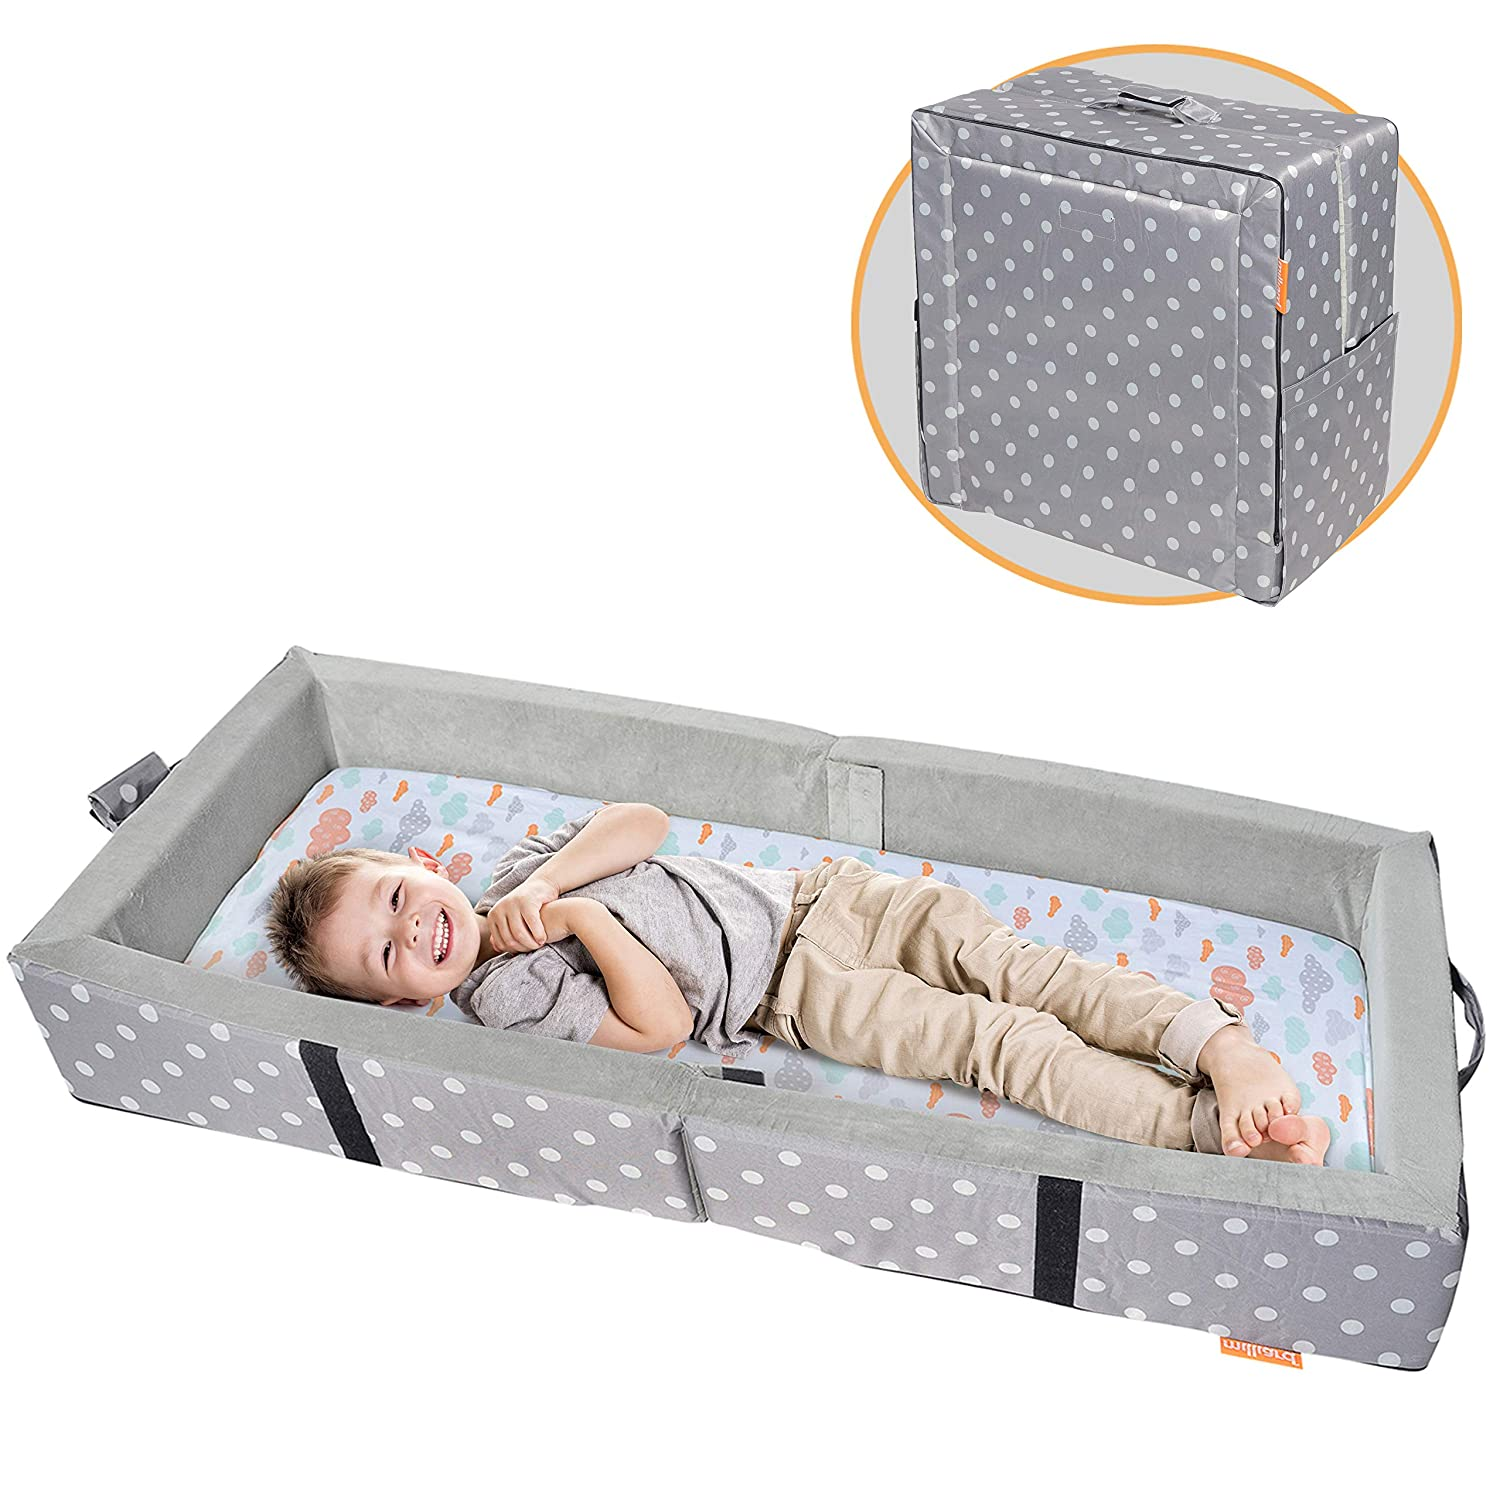 Milliard Portable Toddler Bumper Bed